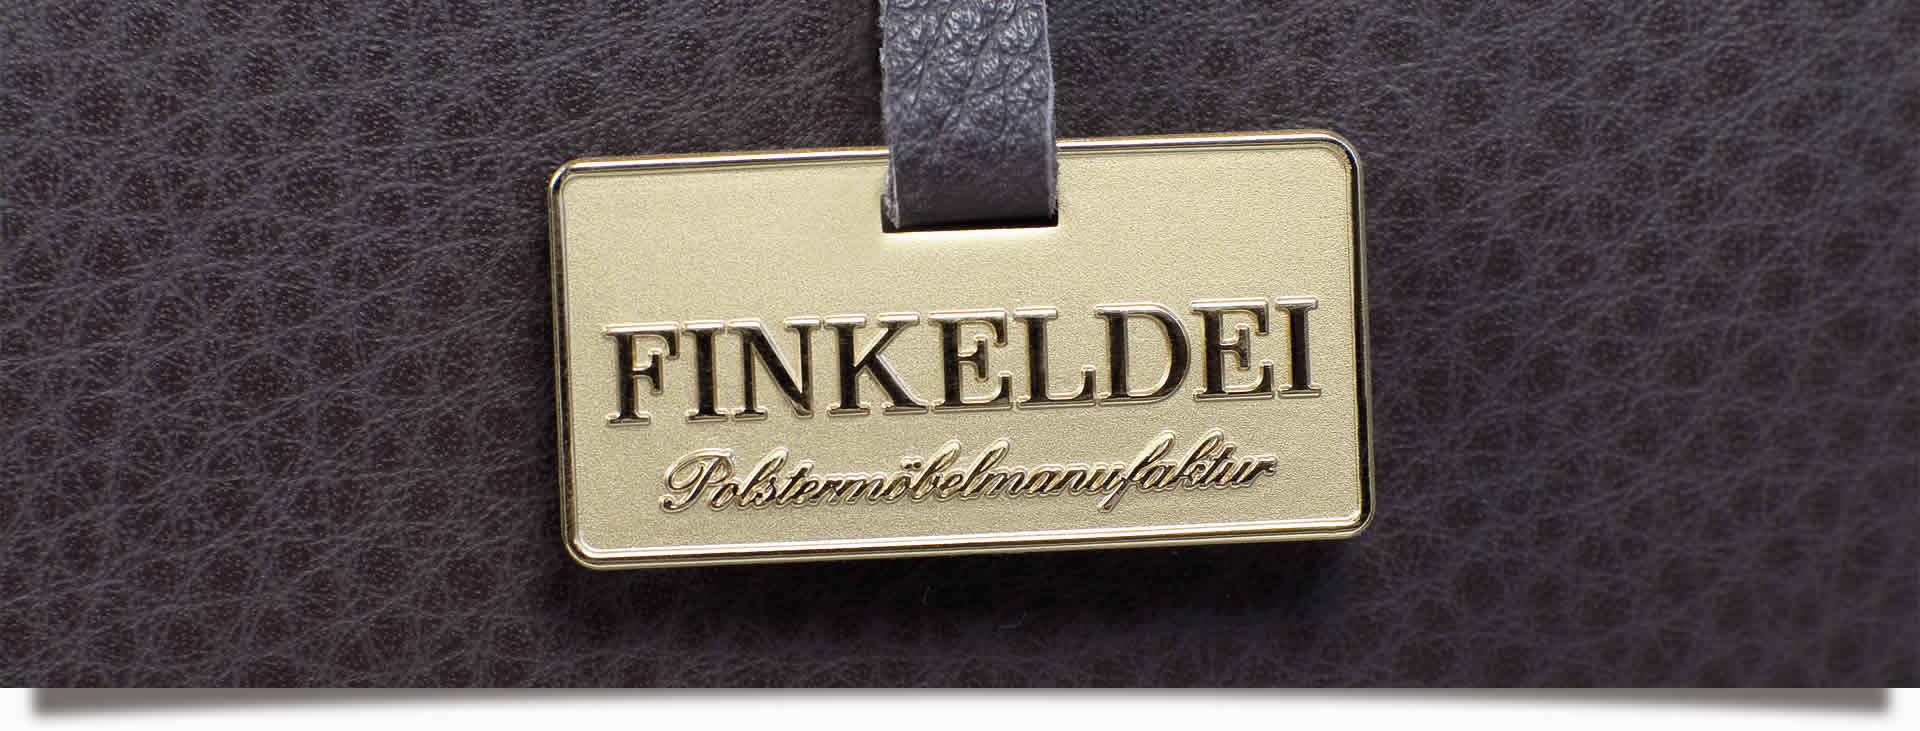 finkeldei polsterm bel gmbh. Black Bedroom Furniture Sets. Home Design Ideas